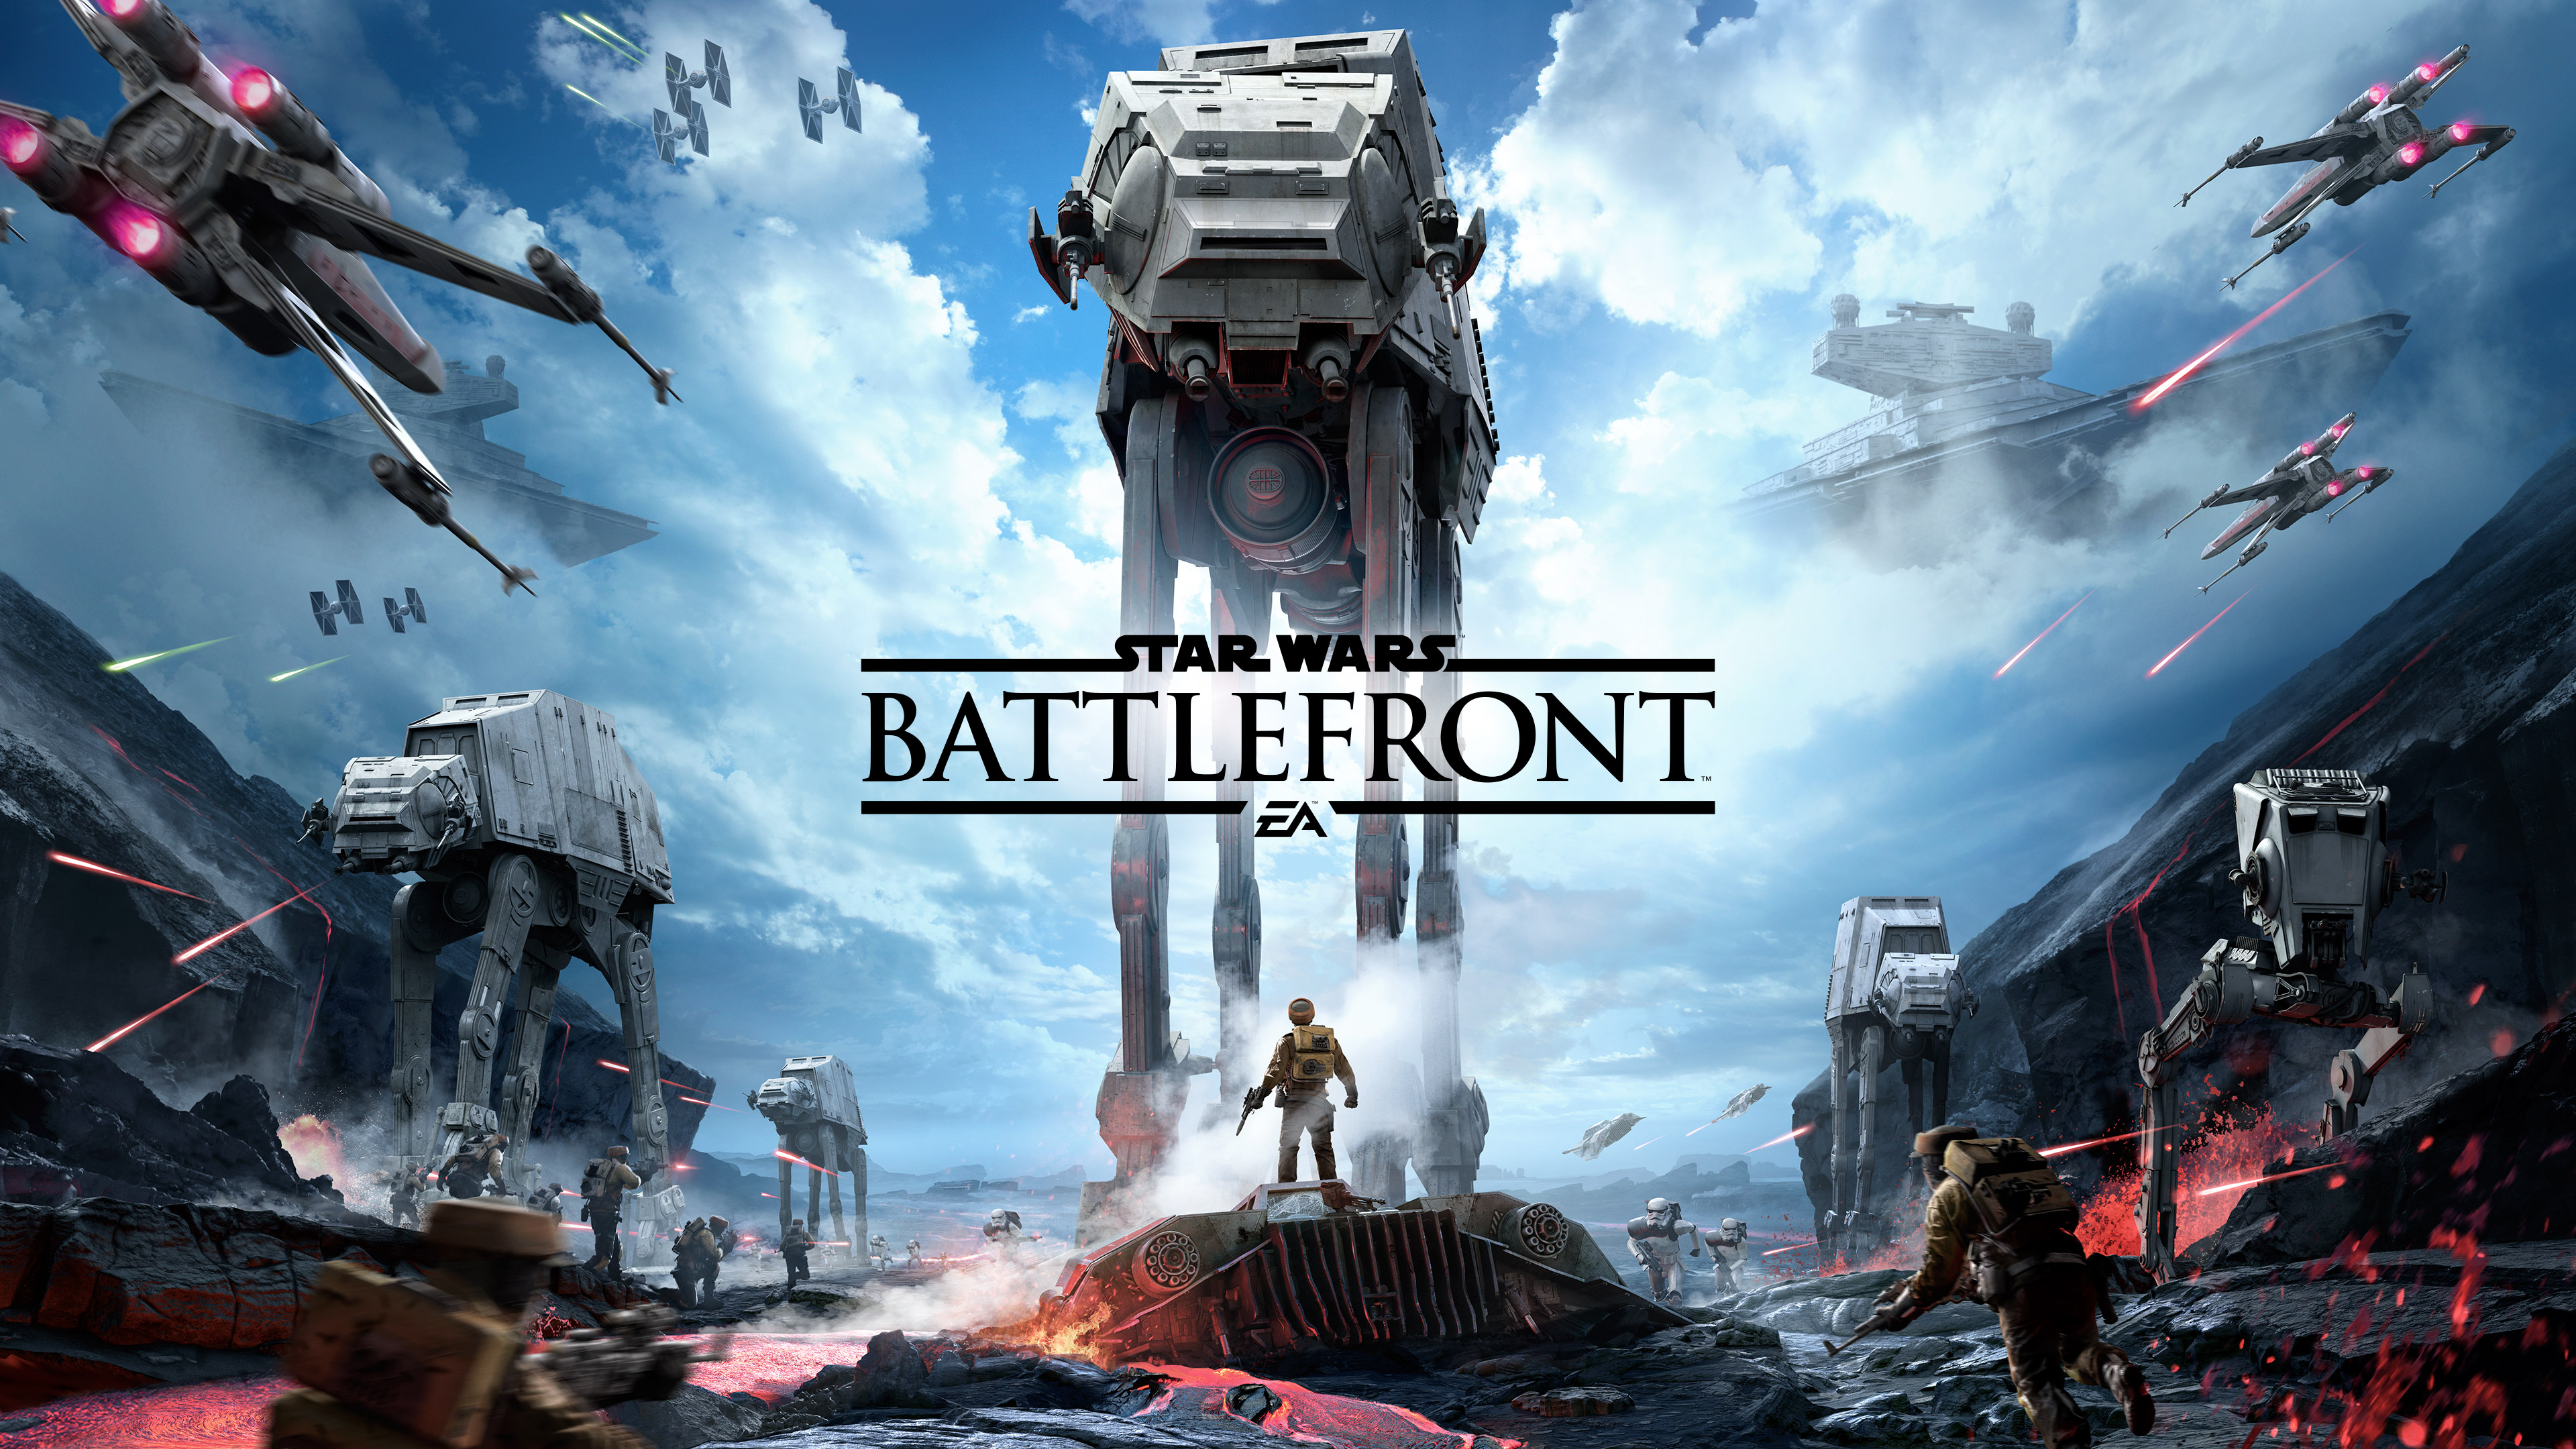 Star Wars Battlefront Wallpapers   Star Wars   Official EA Site 3840x2160